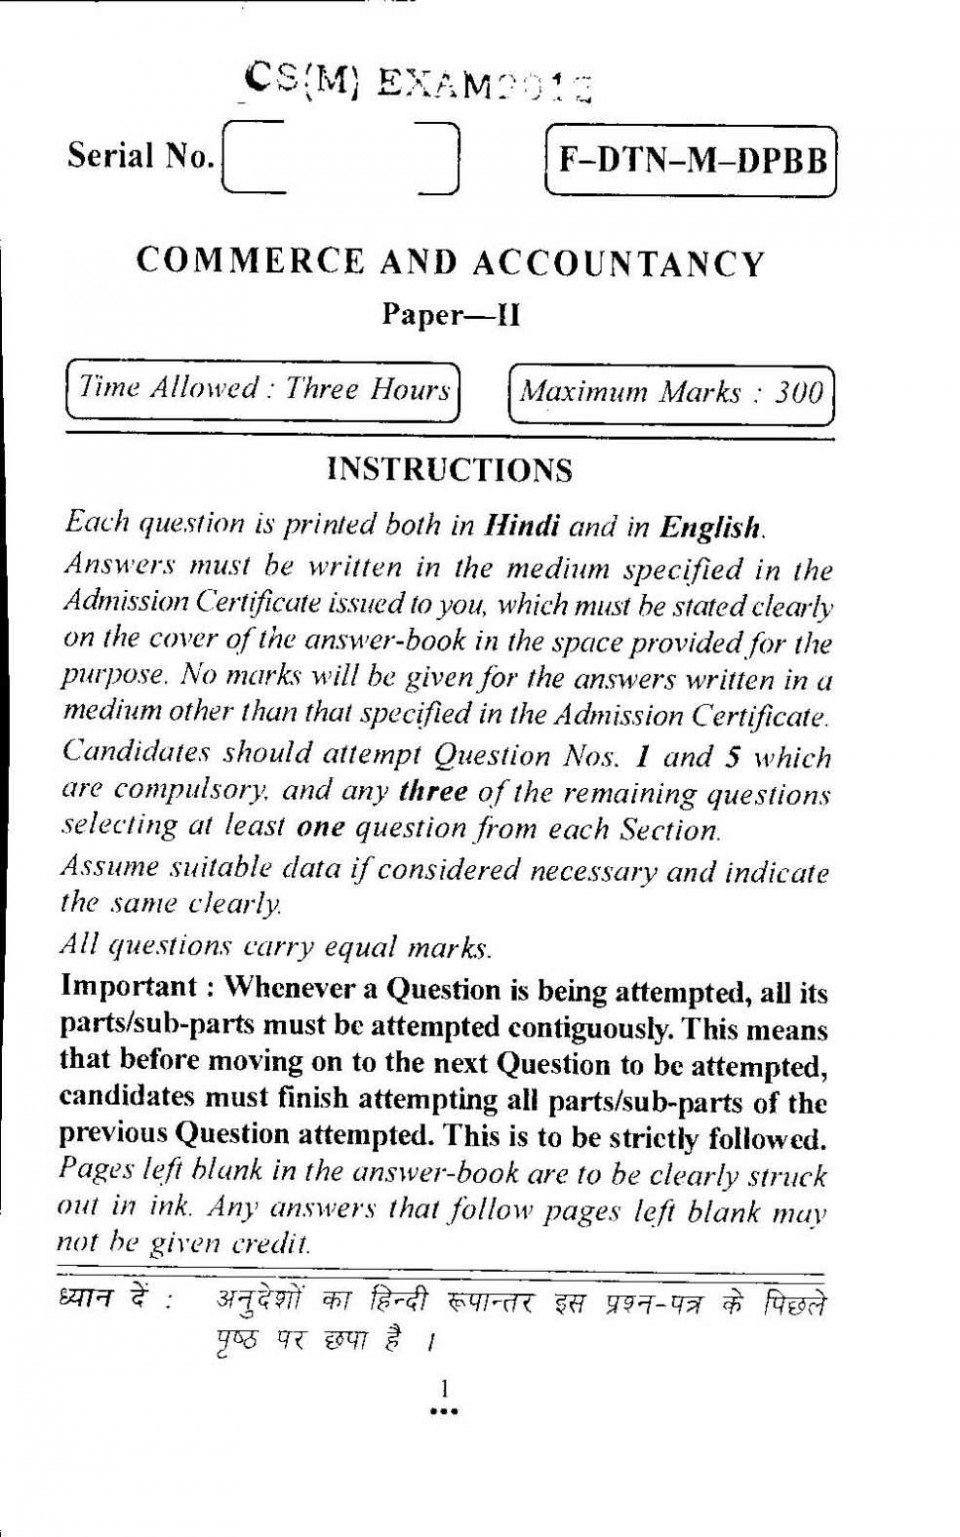 011 Civil Services Examination Commerce And Accountancy Paper Ii Previous Years Que Essay Example Marvelous Racism Argumentative Topics Persuasive In Canada 960